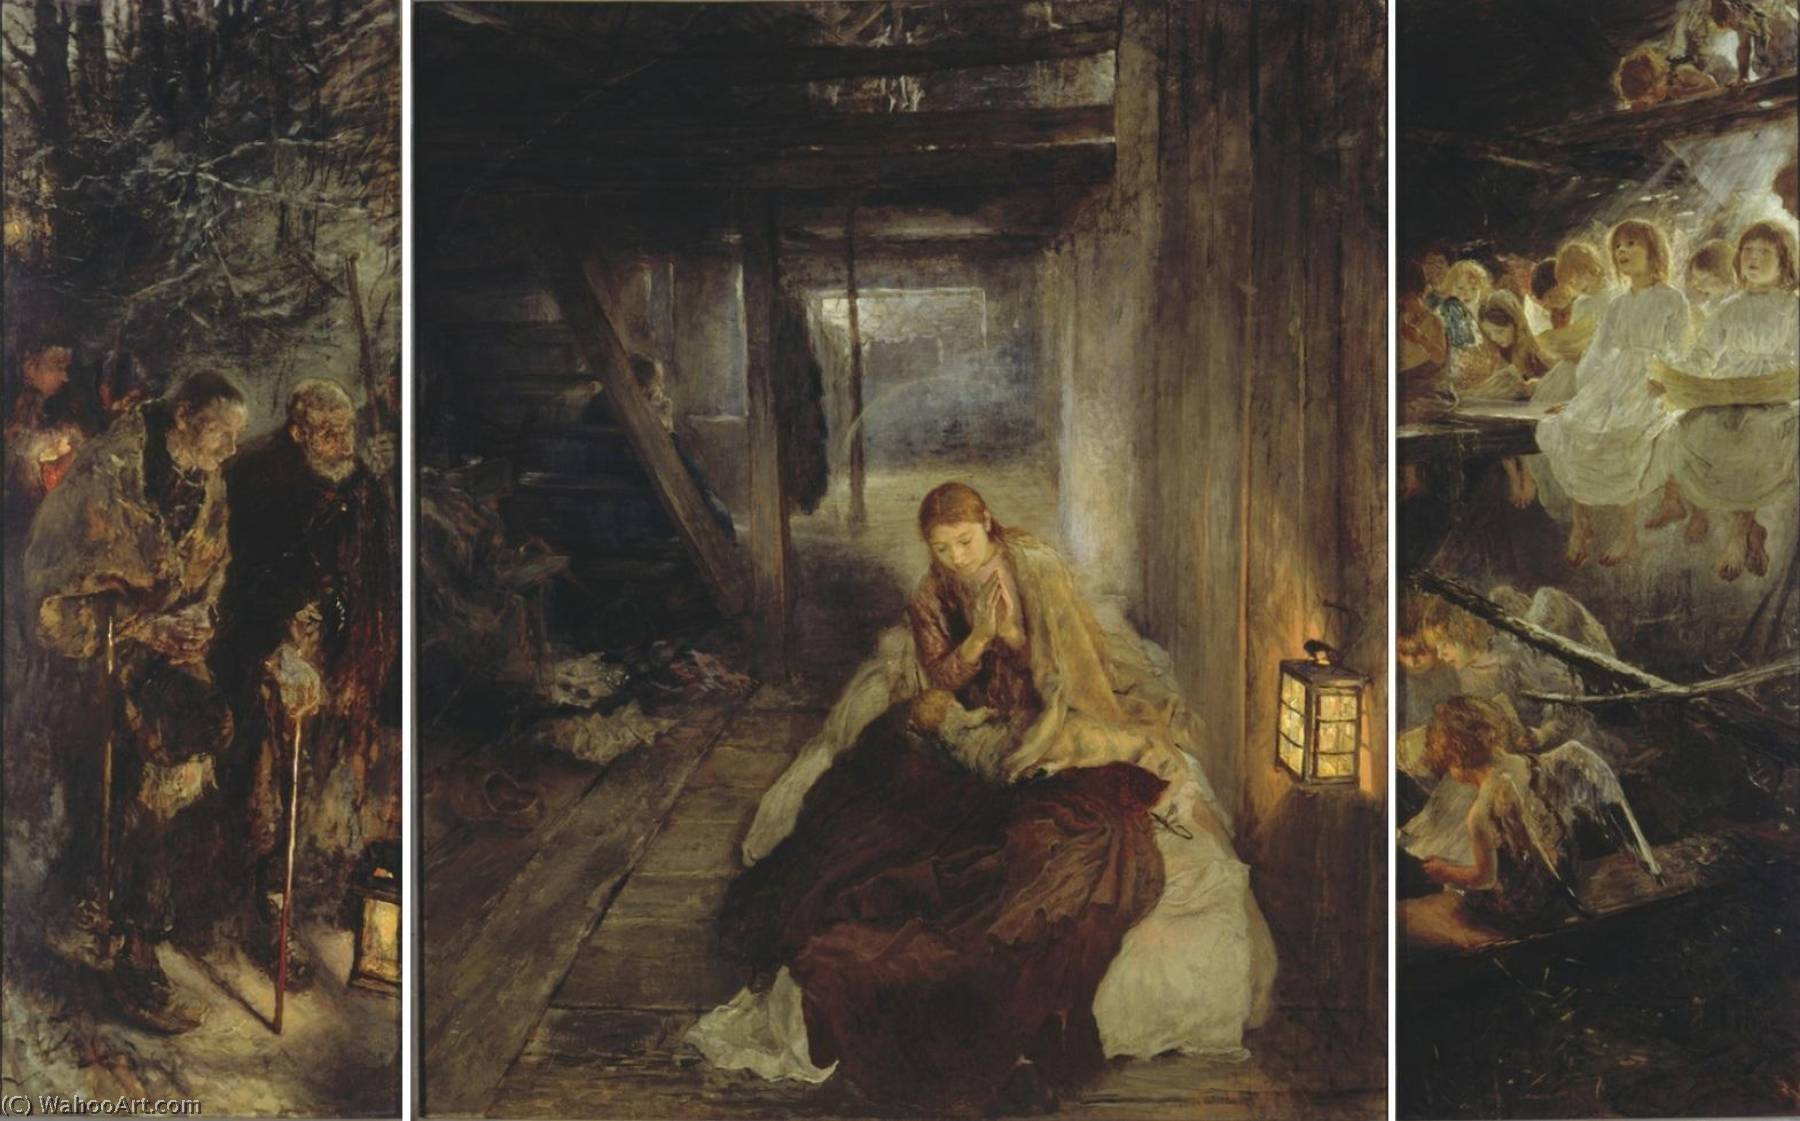 The Holy Night (Triptych), Oil On Canvas by Fritz Von Uhde (1848-1911)